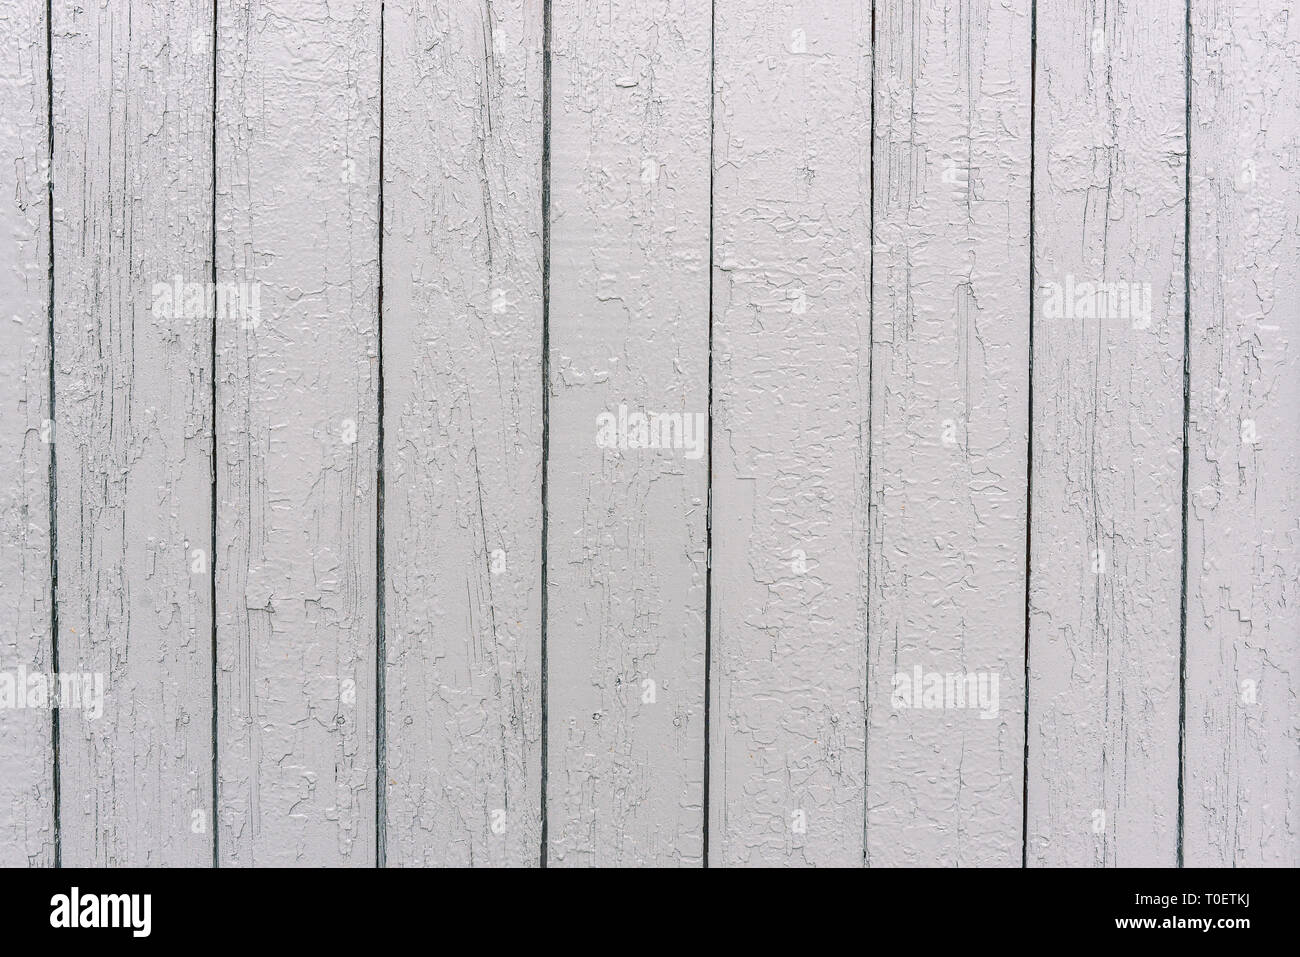 White Wooden Fence. The Surface Of The Tree. Painted Boards In White Color.  Uneven Texture. Wood Texture Background